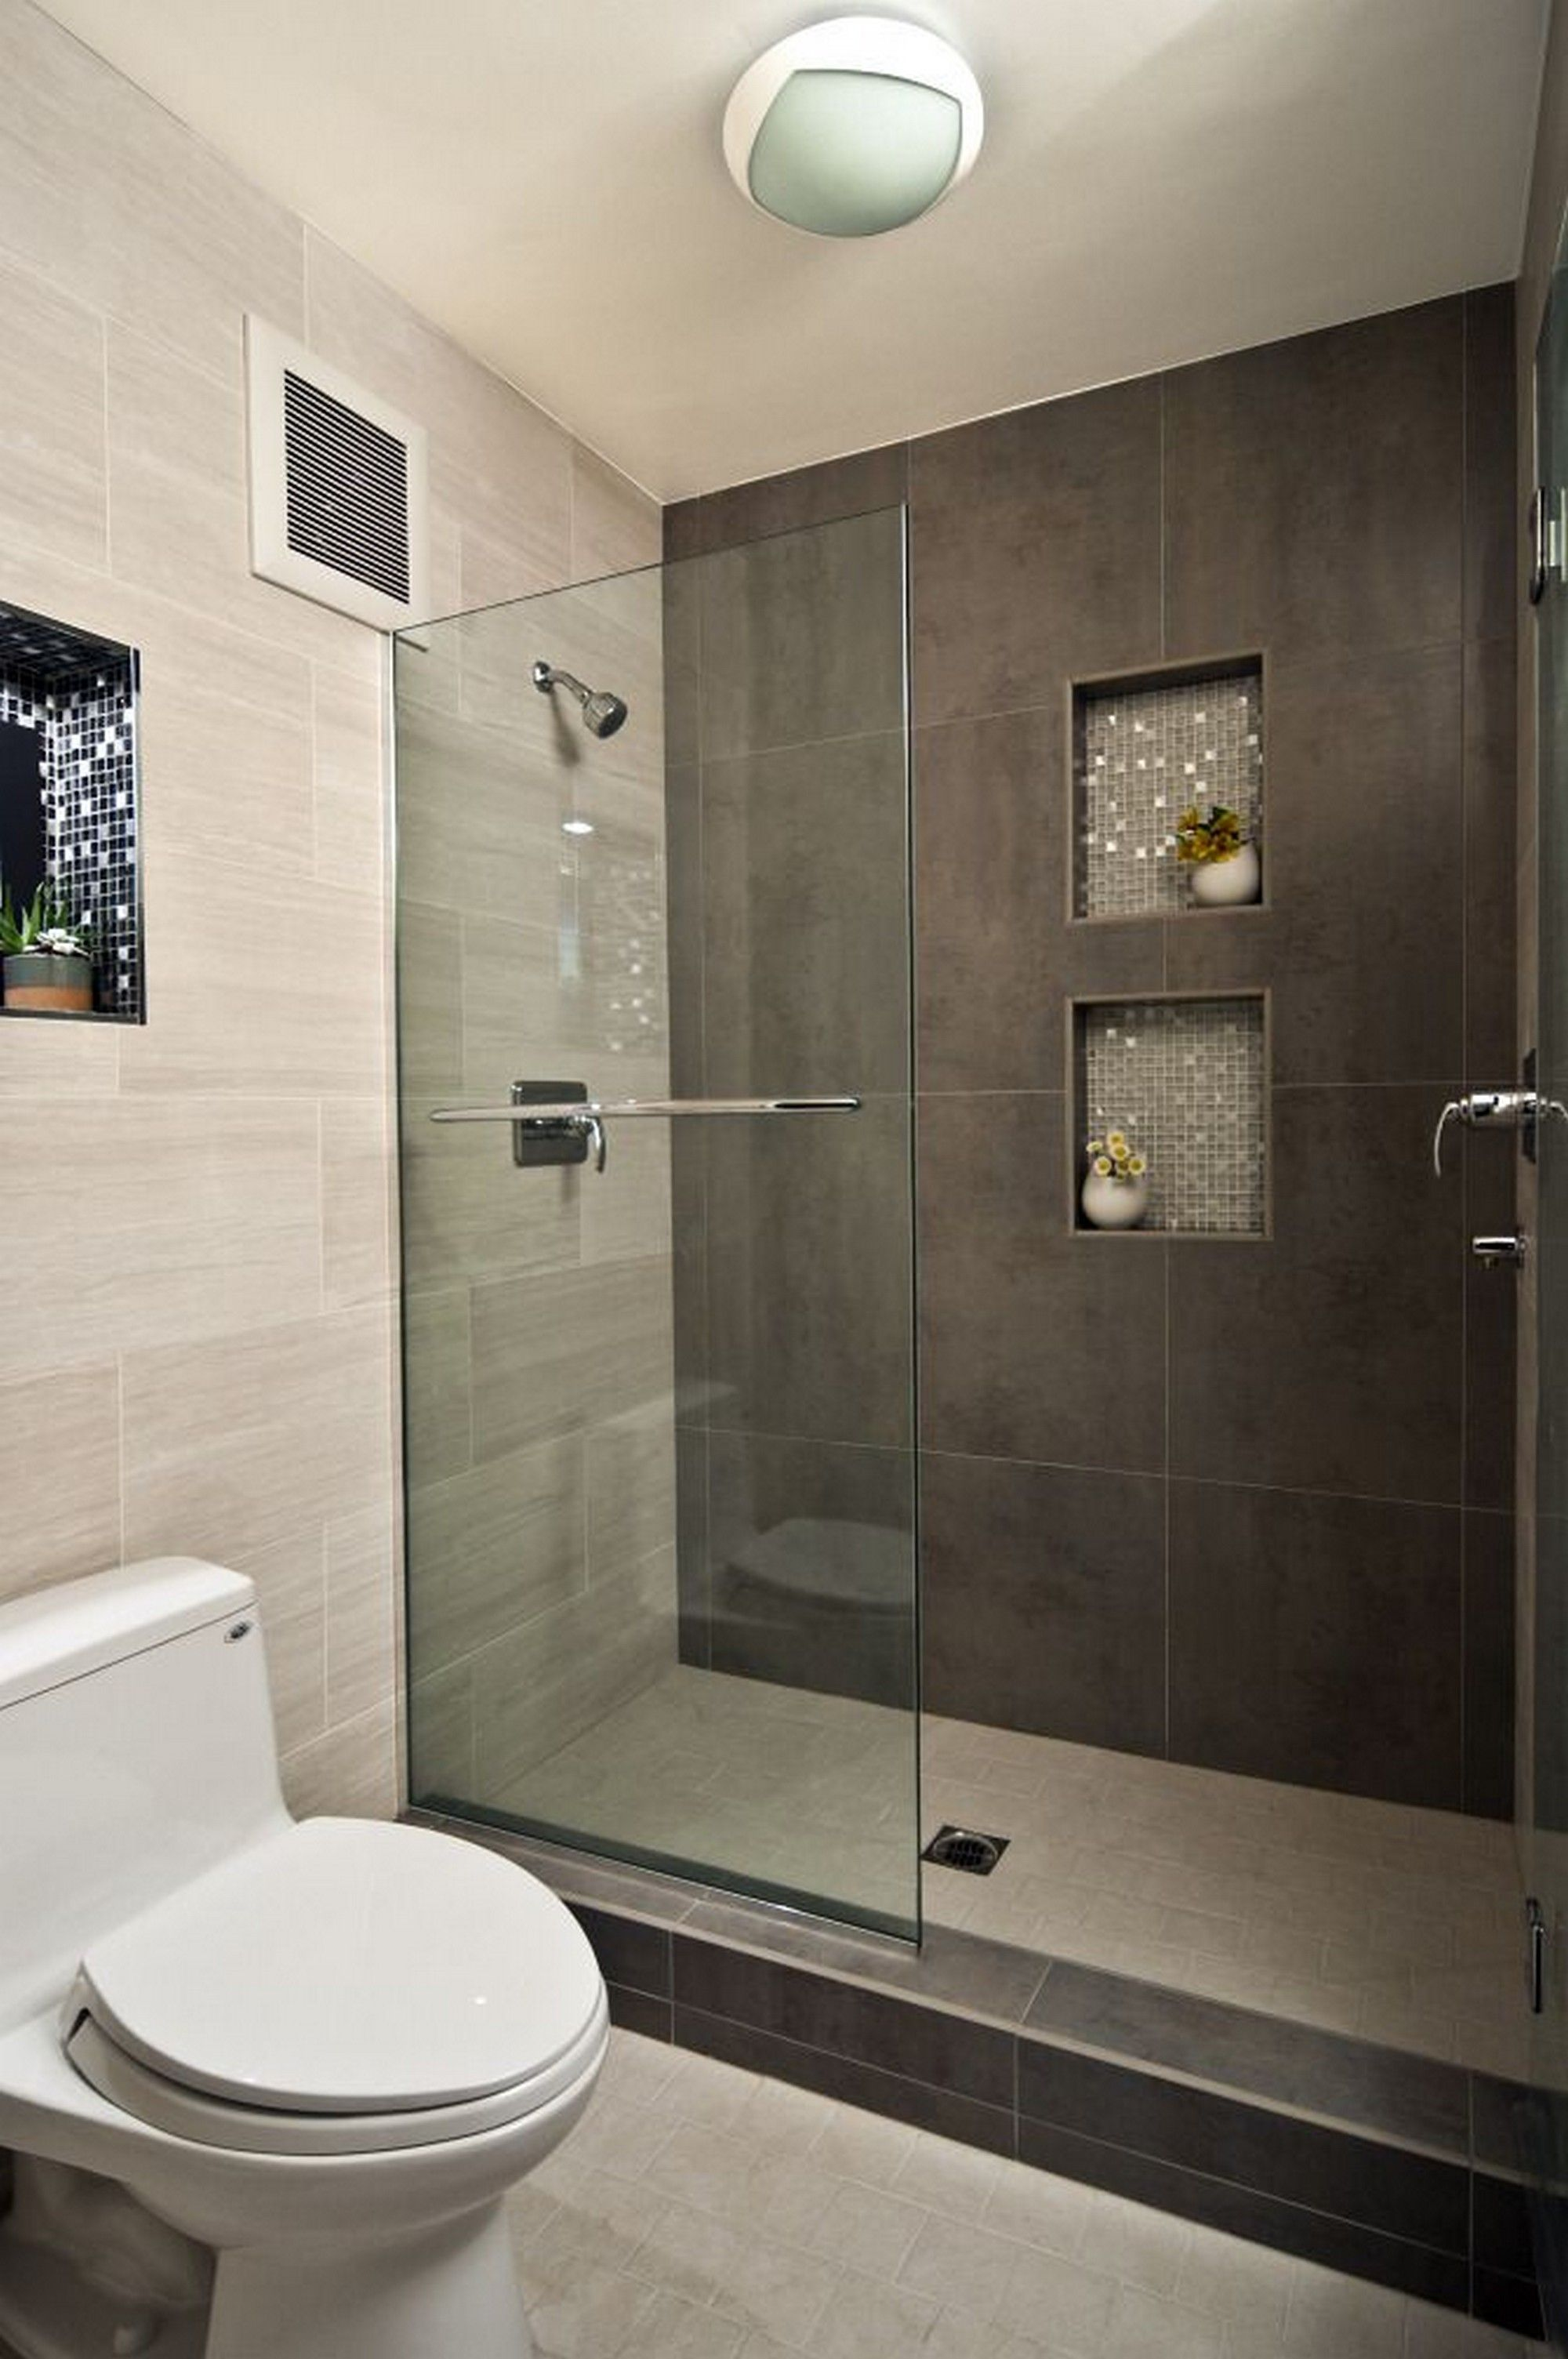 Emejing Walk In Shower Design Ideas Gallery Decorating Interior